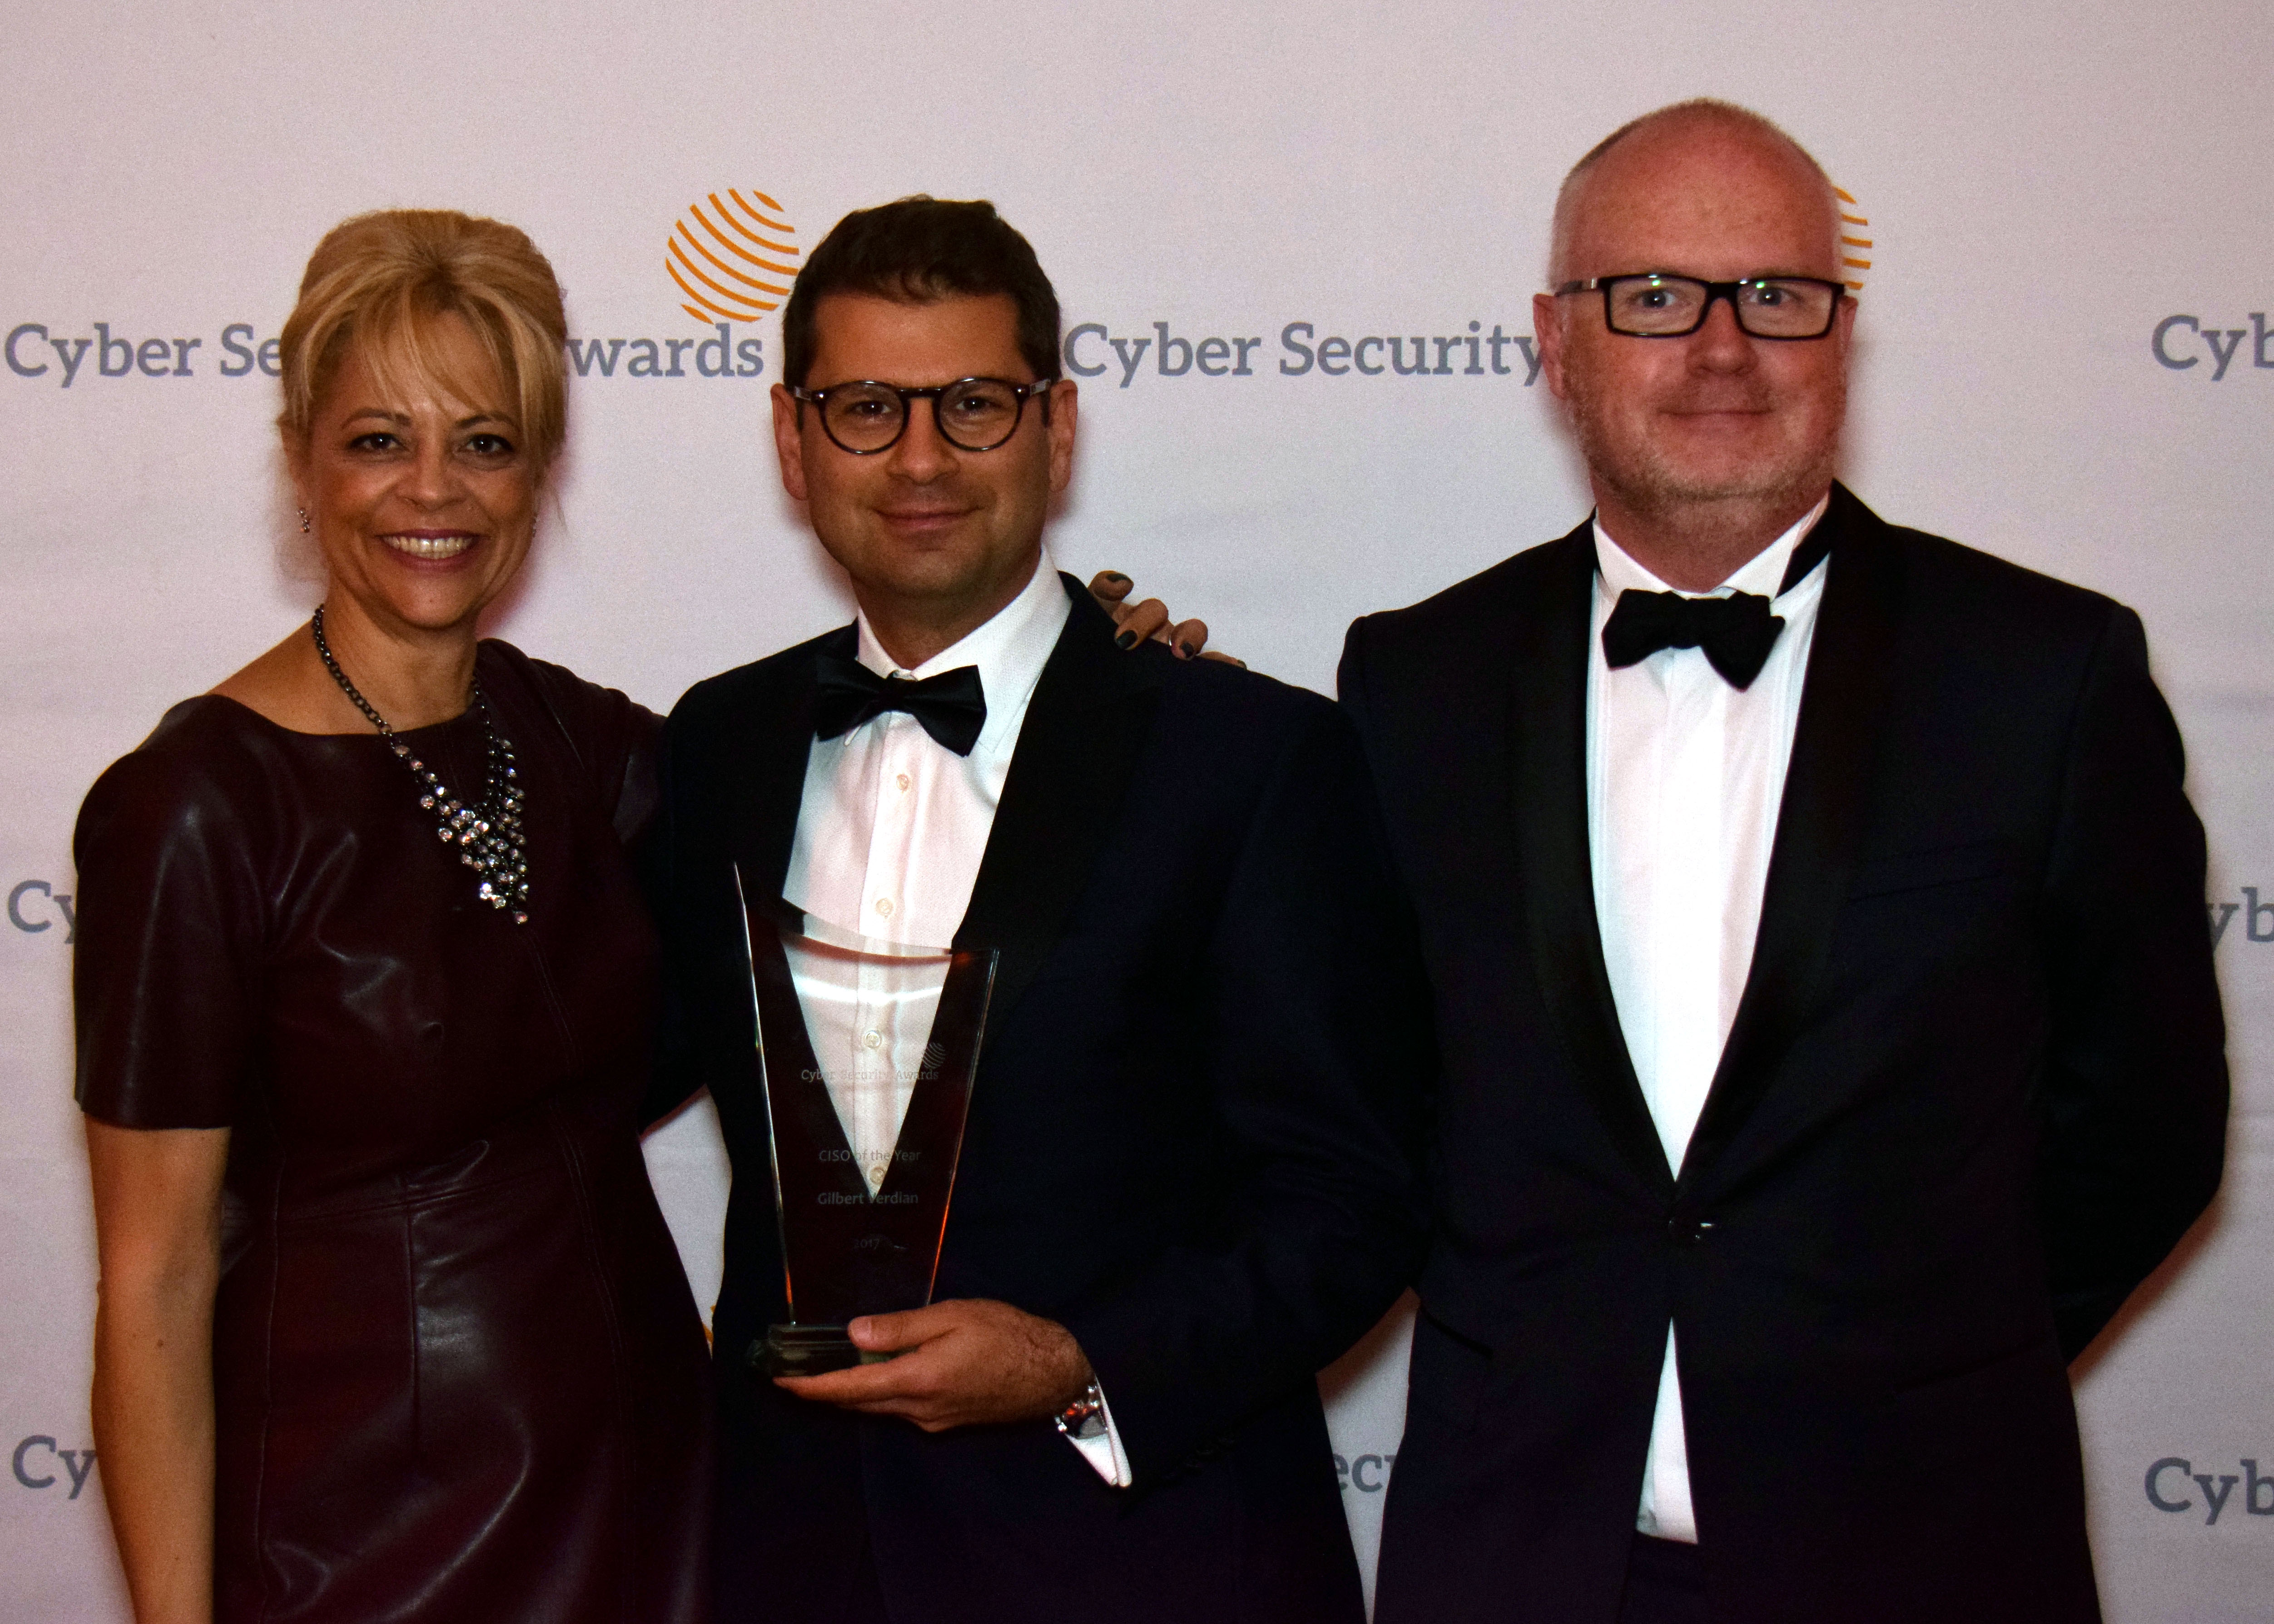 2017 Cyber Security Awards CISO of the Year Gilbertrt Verdian